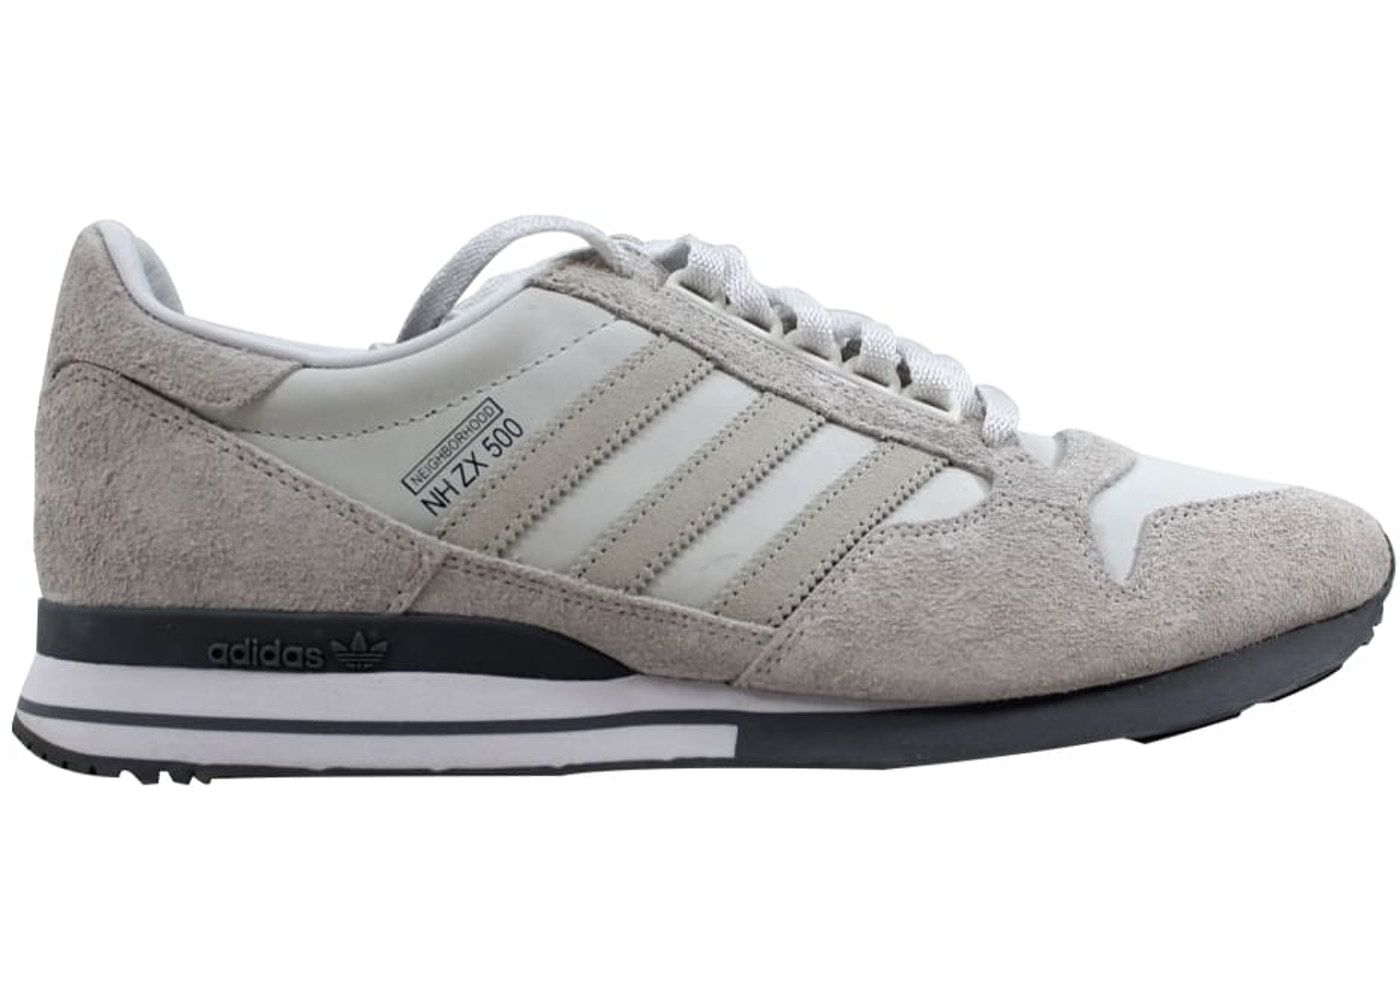 47c4d679a adidas NH ZX 500 OG Neighborhood - B26088